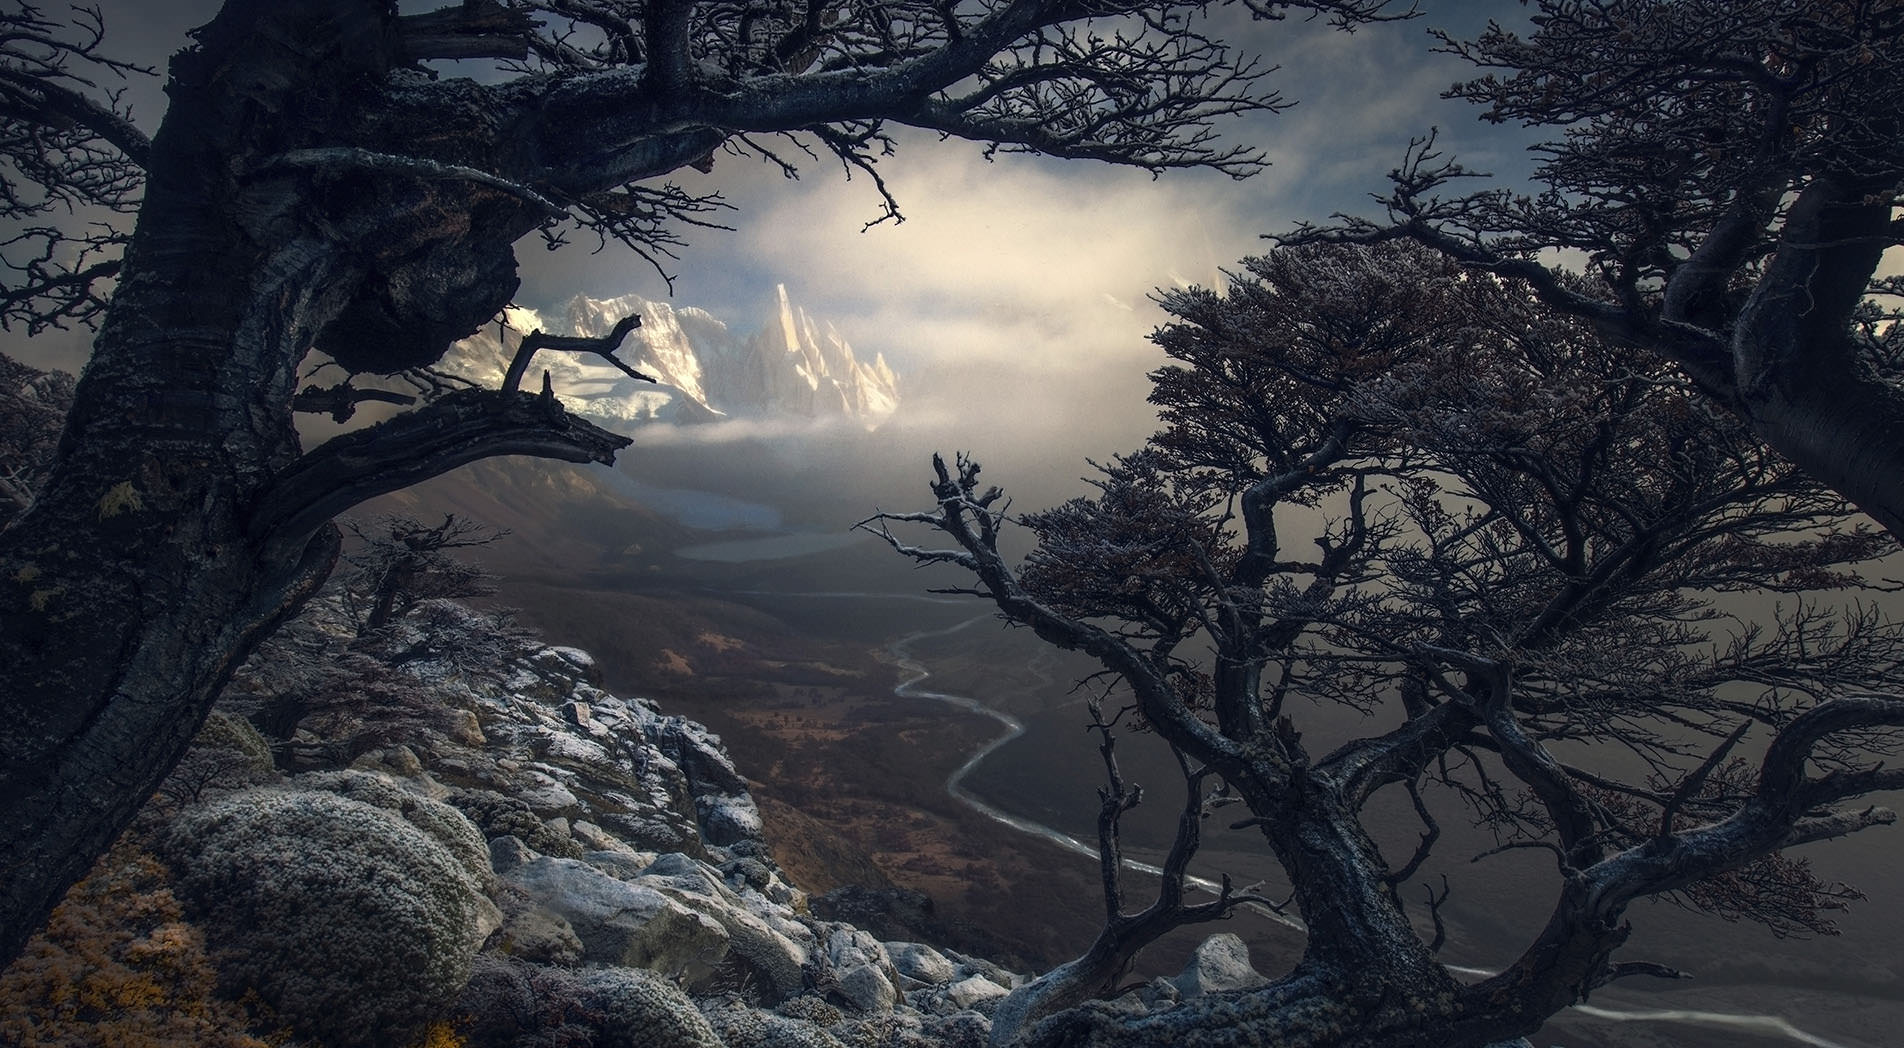 <img src=images/MidLogoW.png />